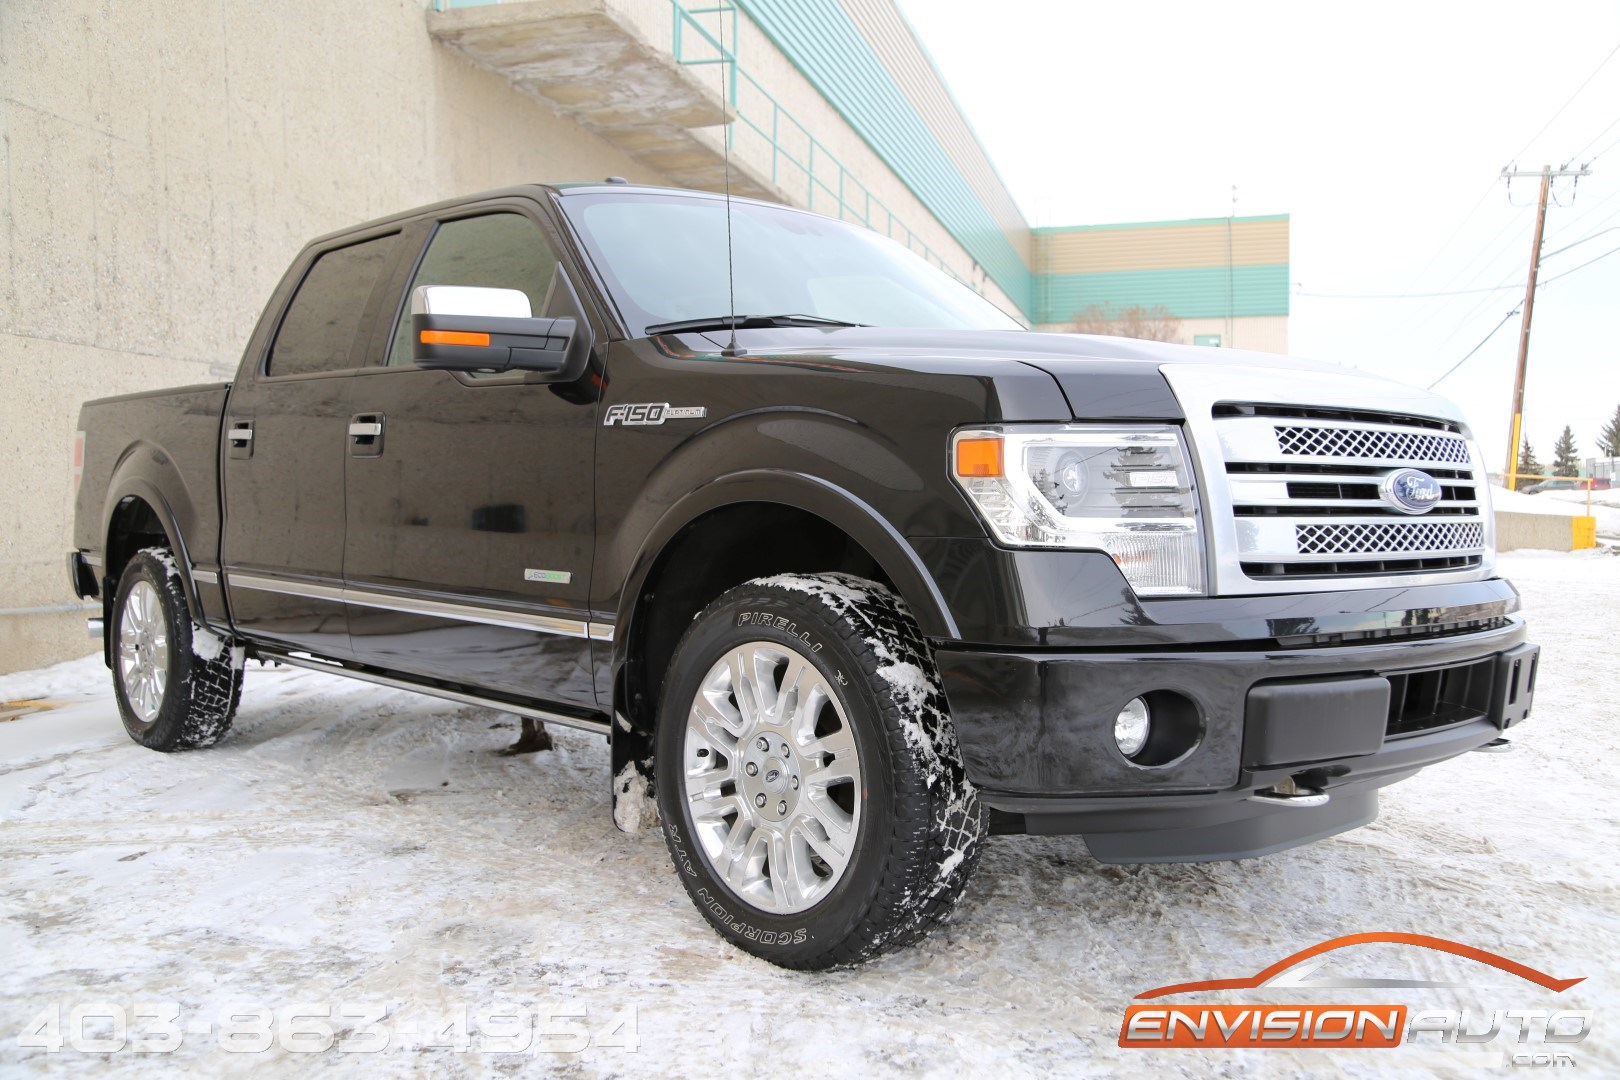 2014 ford f 150 crew platinum ecoboost power boards only 61k kms envision auto. Black Bedroom Furniture Sets. Home Design Ideas